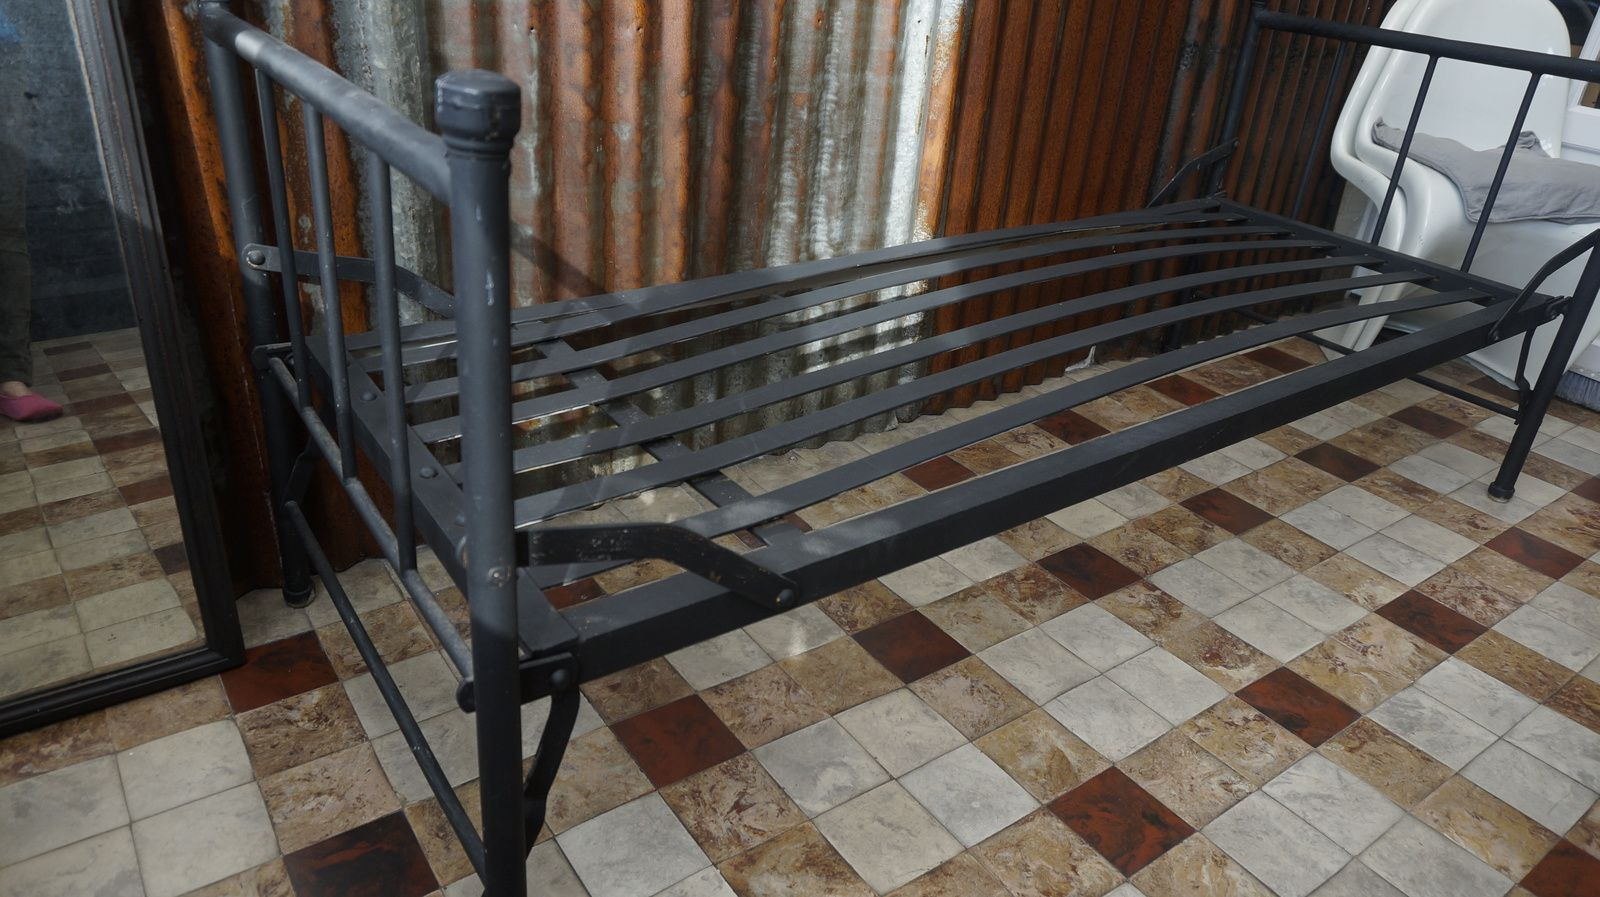 lit metal rosycabroc design industriel. Black Bedroom Furniture Sets. Home Design Ideas